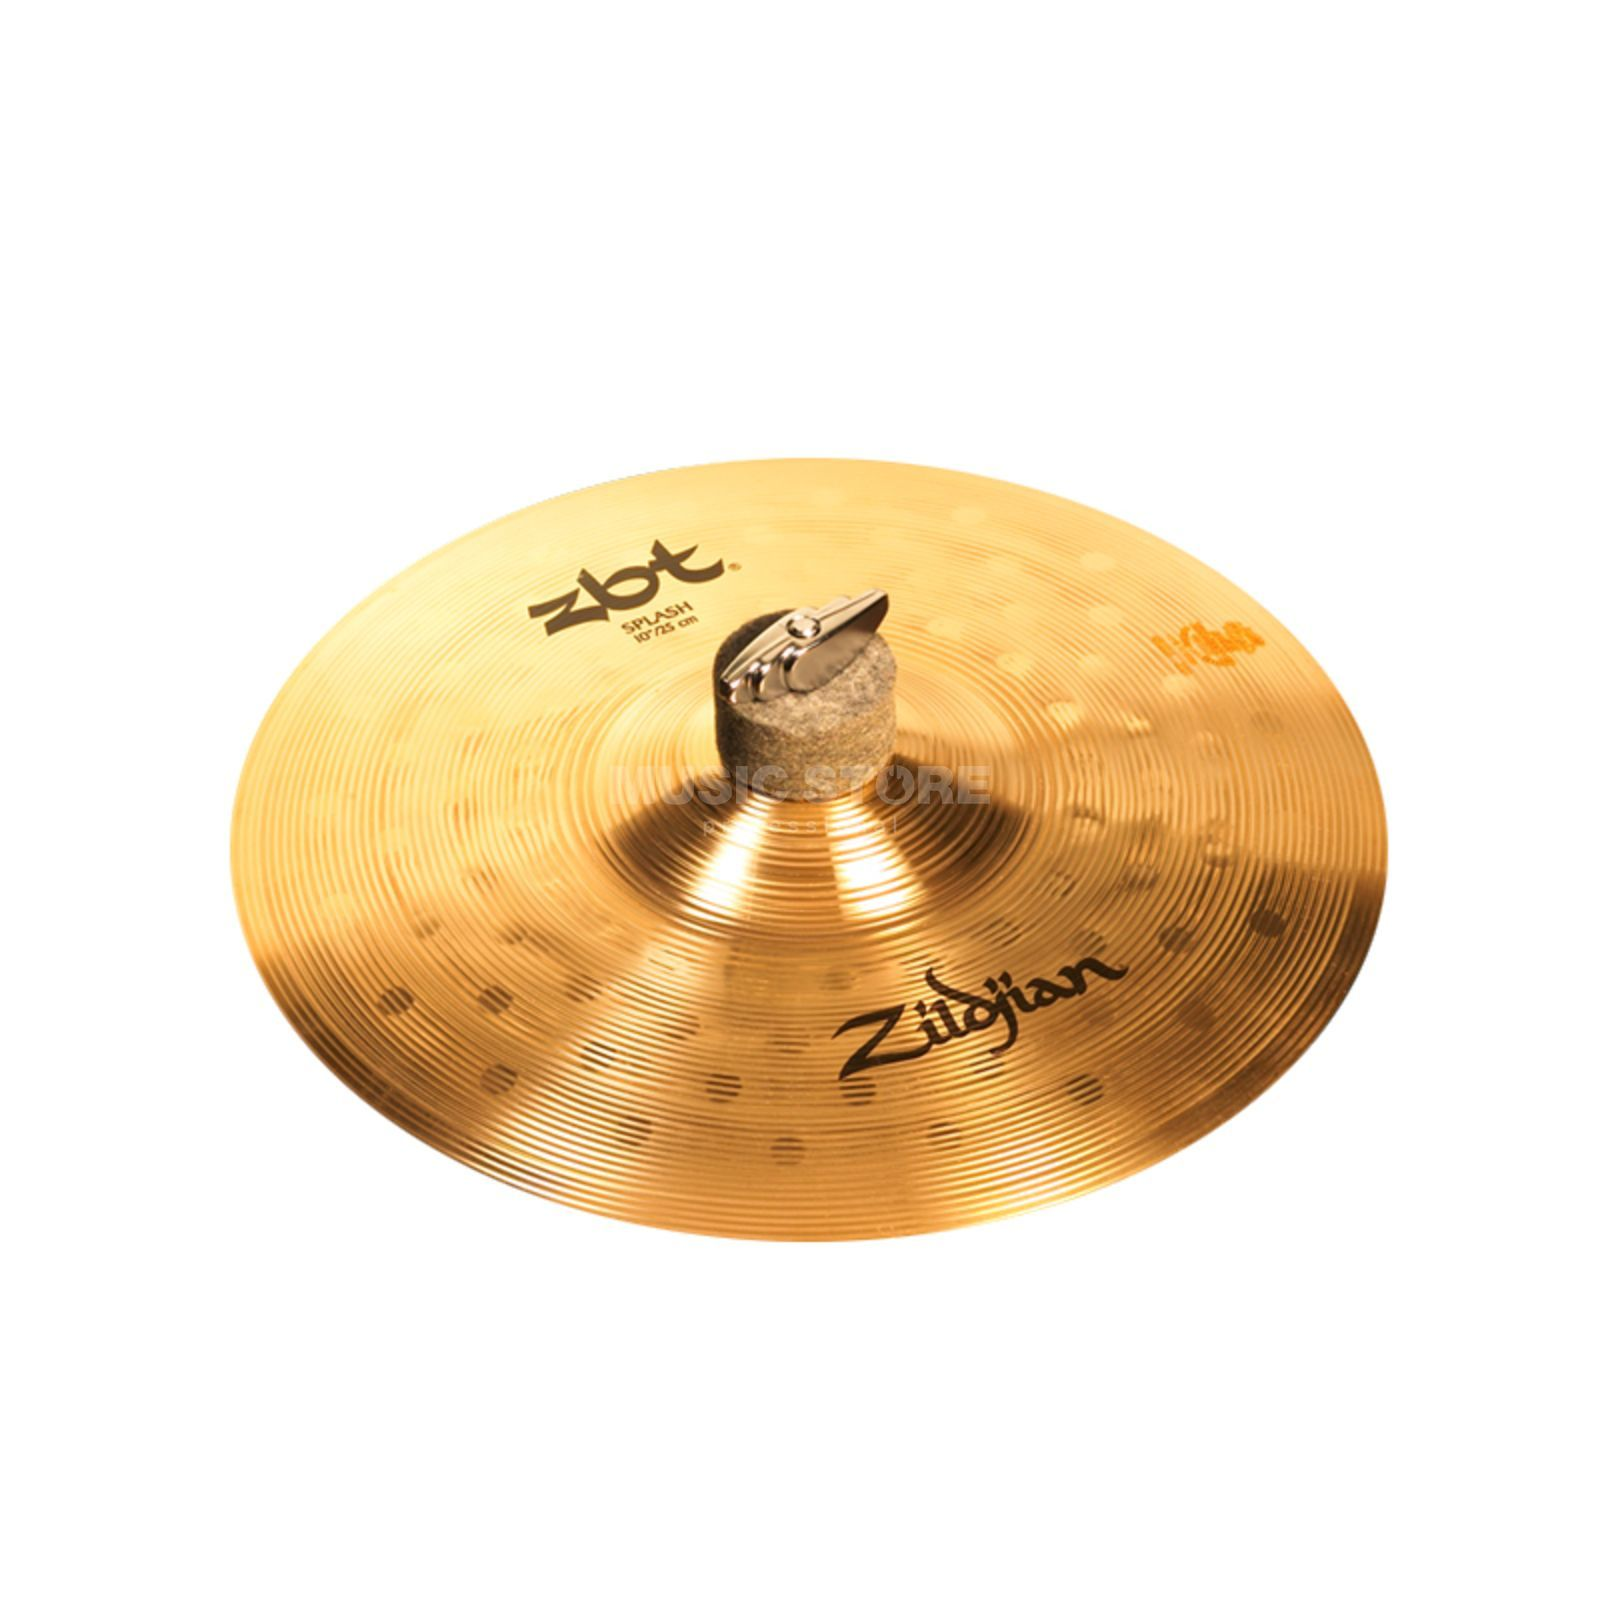 "Zildjian ZBT Splash 10"" Brilliant Finish Produktbild"